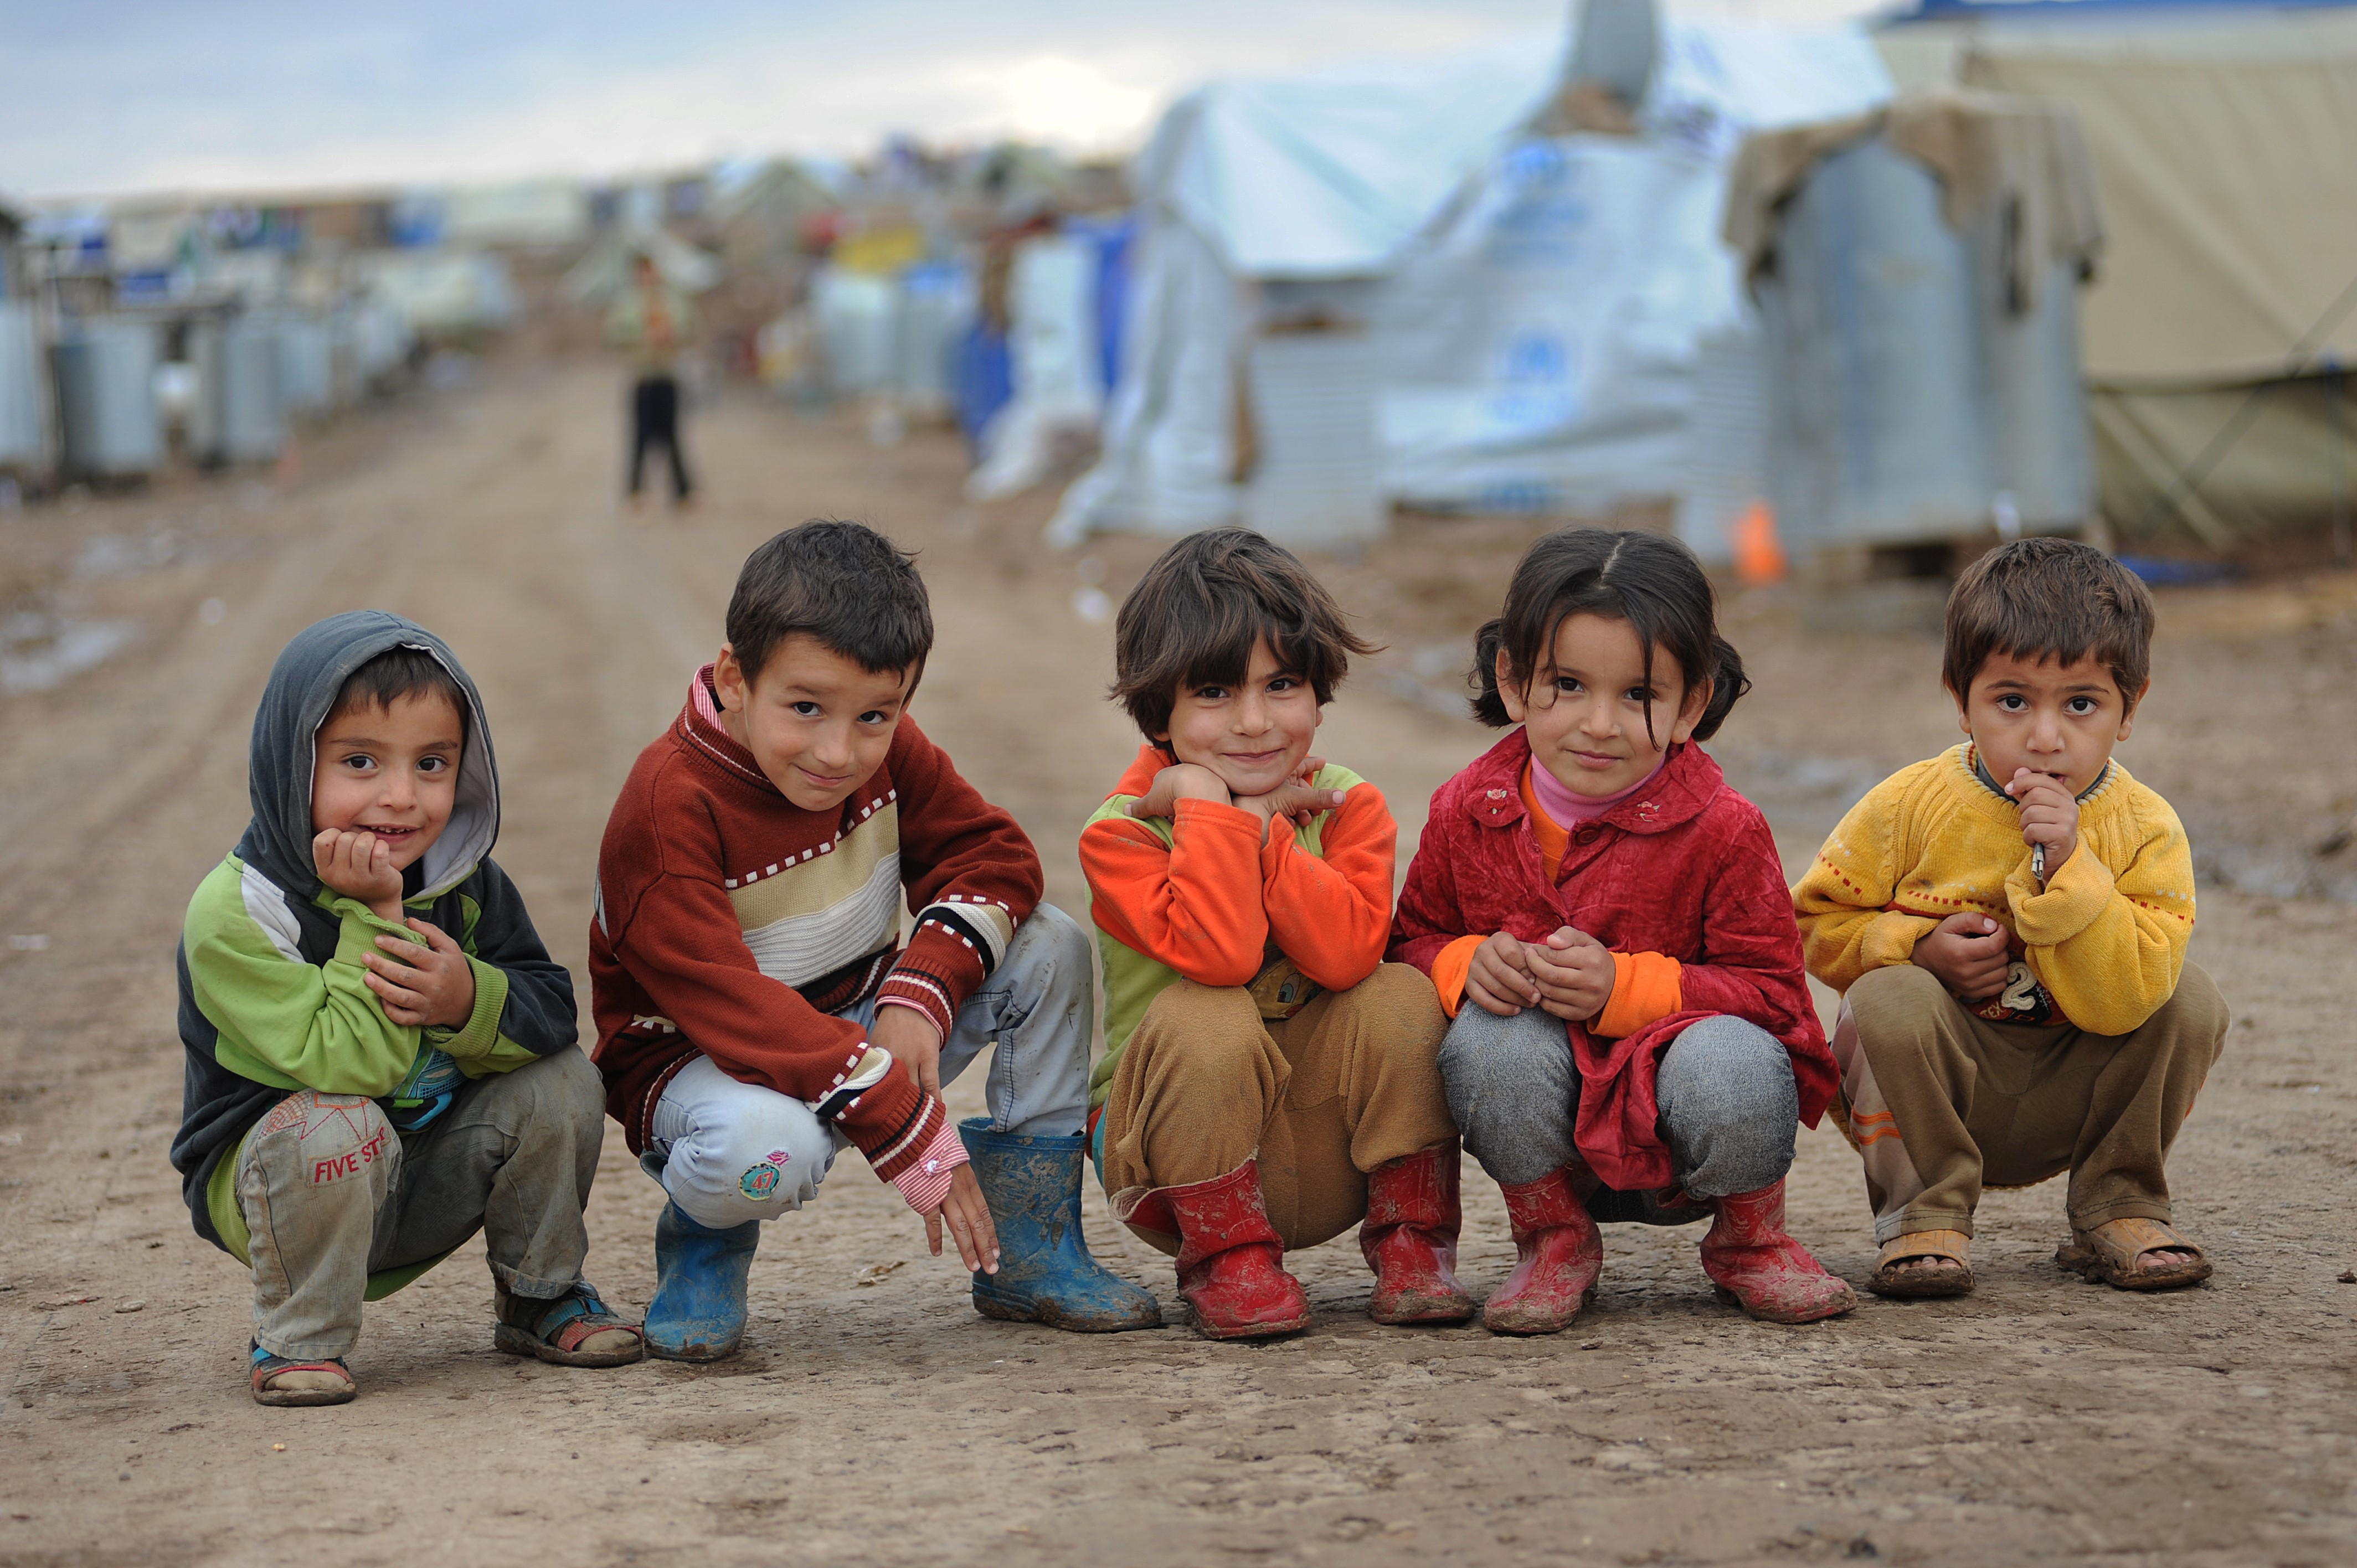 Refugee children play in Domiz camp in northern Iraq, where the IRC provides vital education and protection services. Photo: Peter Biro/IRC